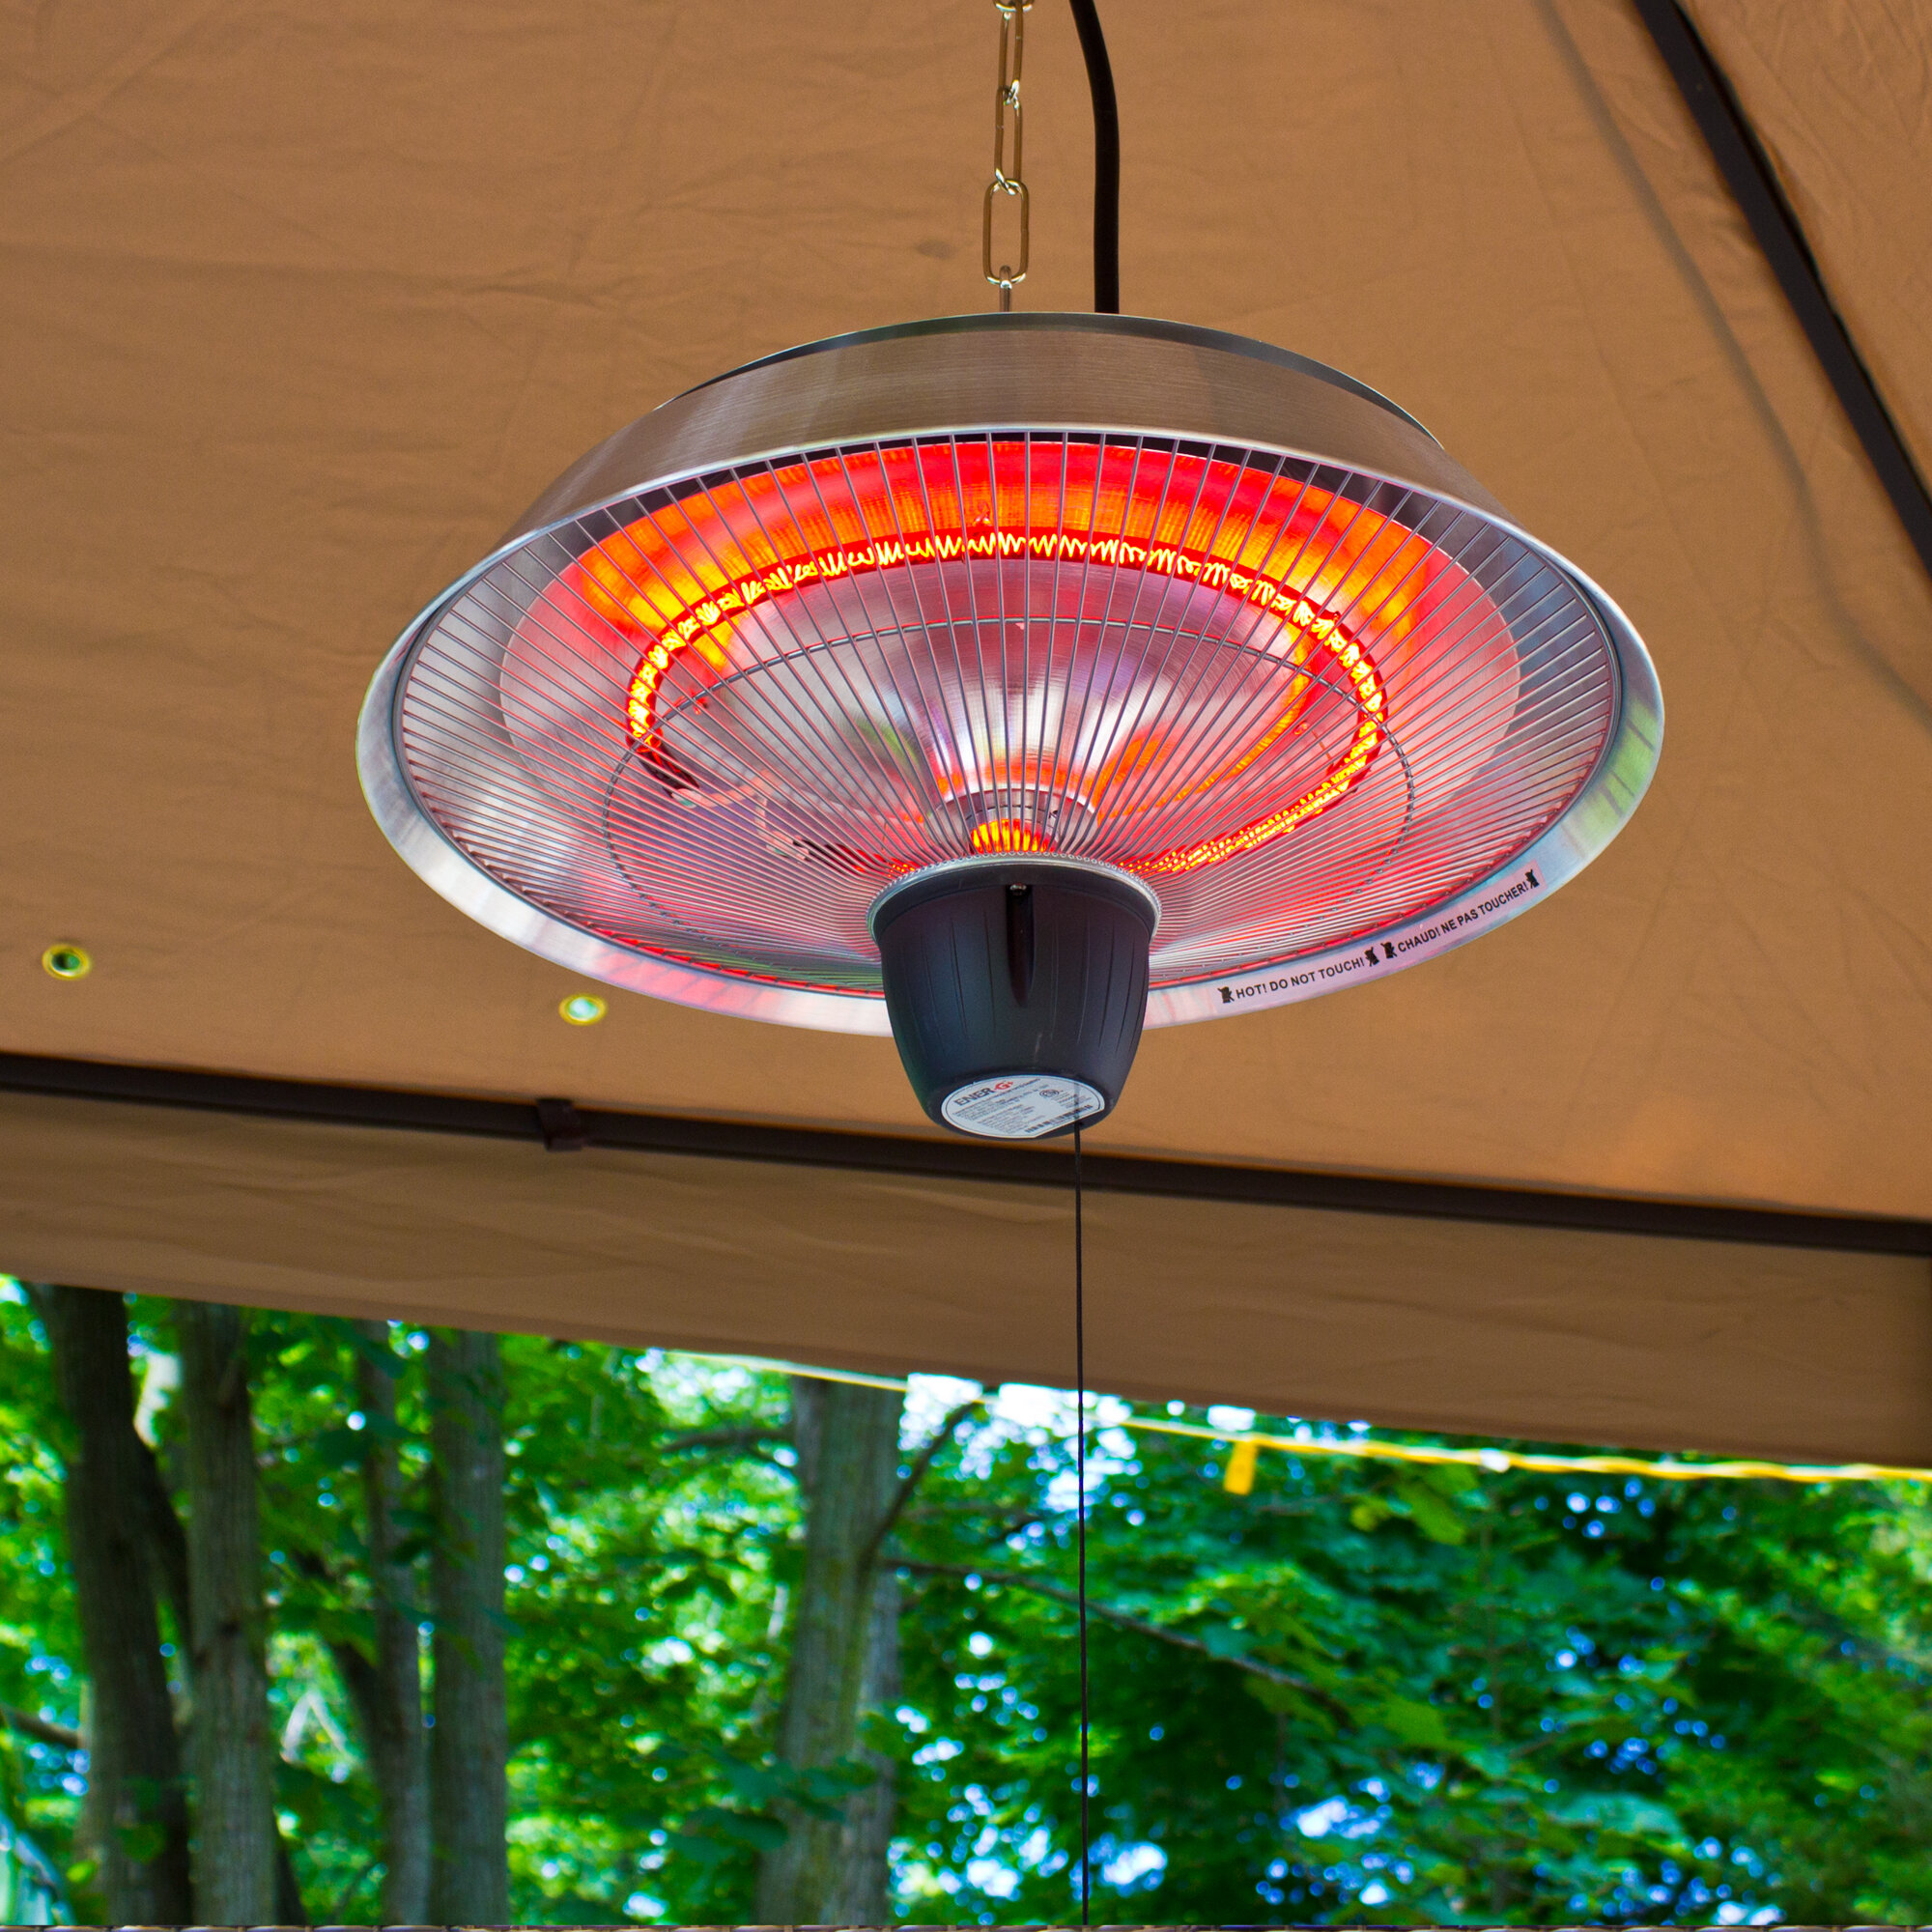 EnerG 1500 Watt Electric Hanging Patio Heater & Reviews